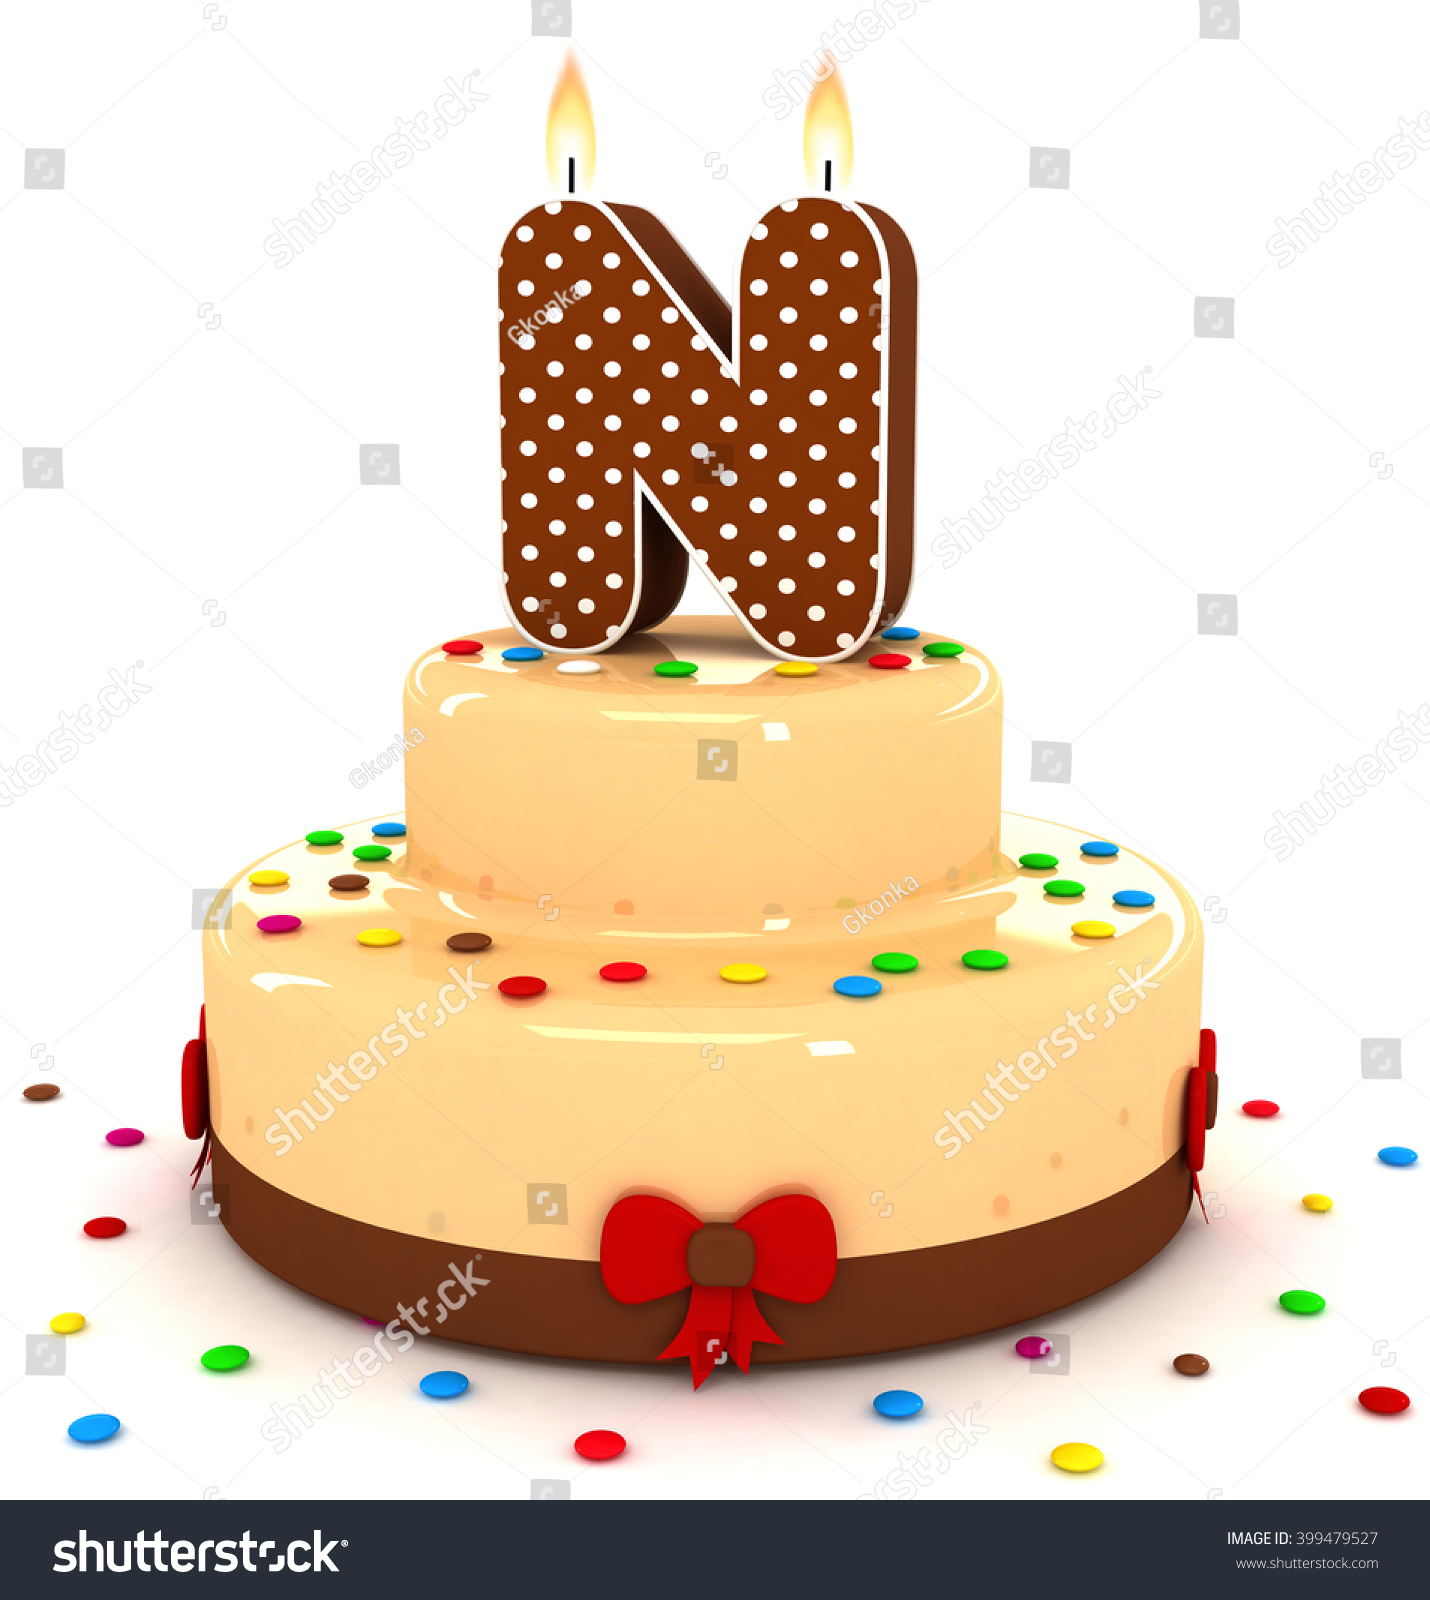 3d cute letter n rendering colorful with chocolate birthday cake alphabet with sweet polka